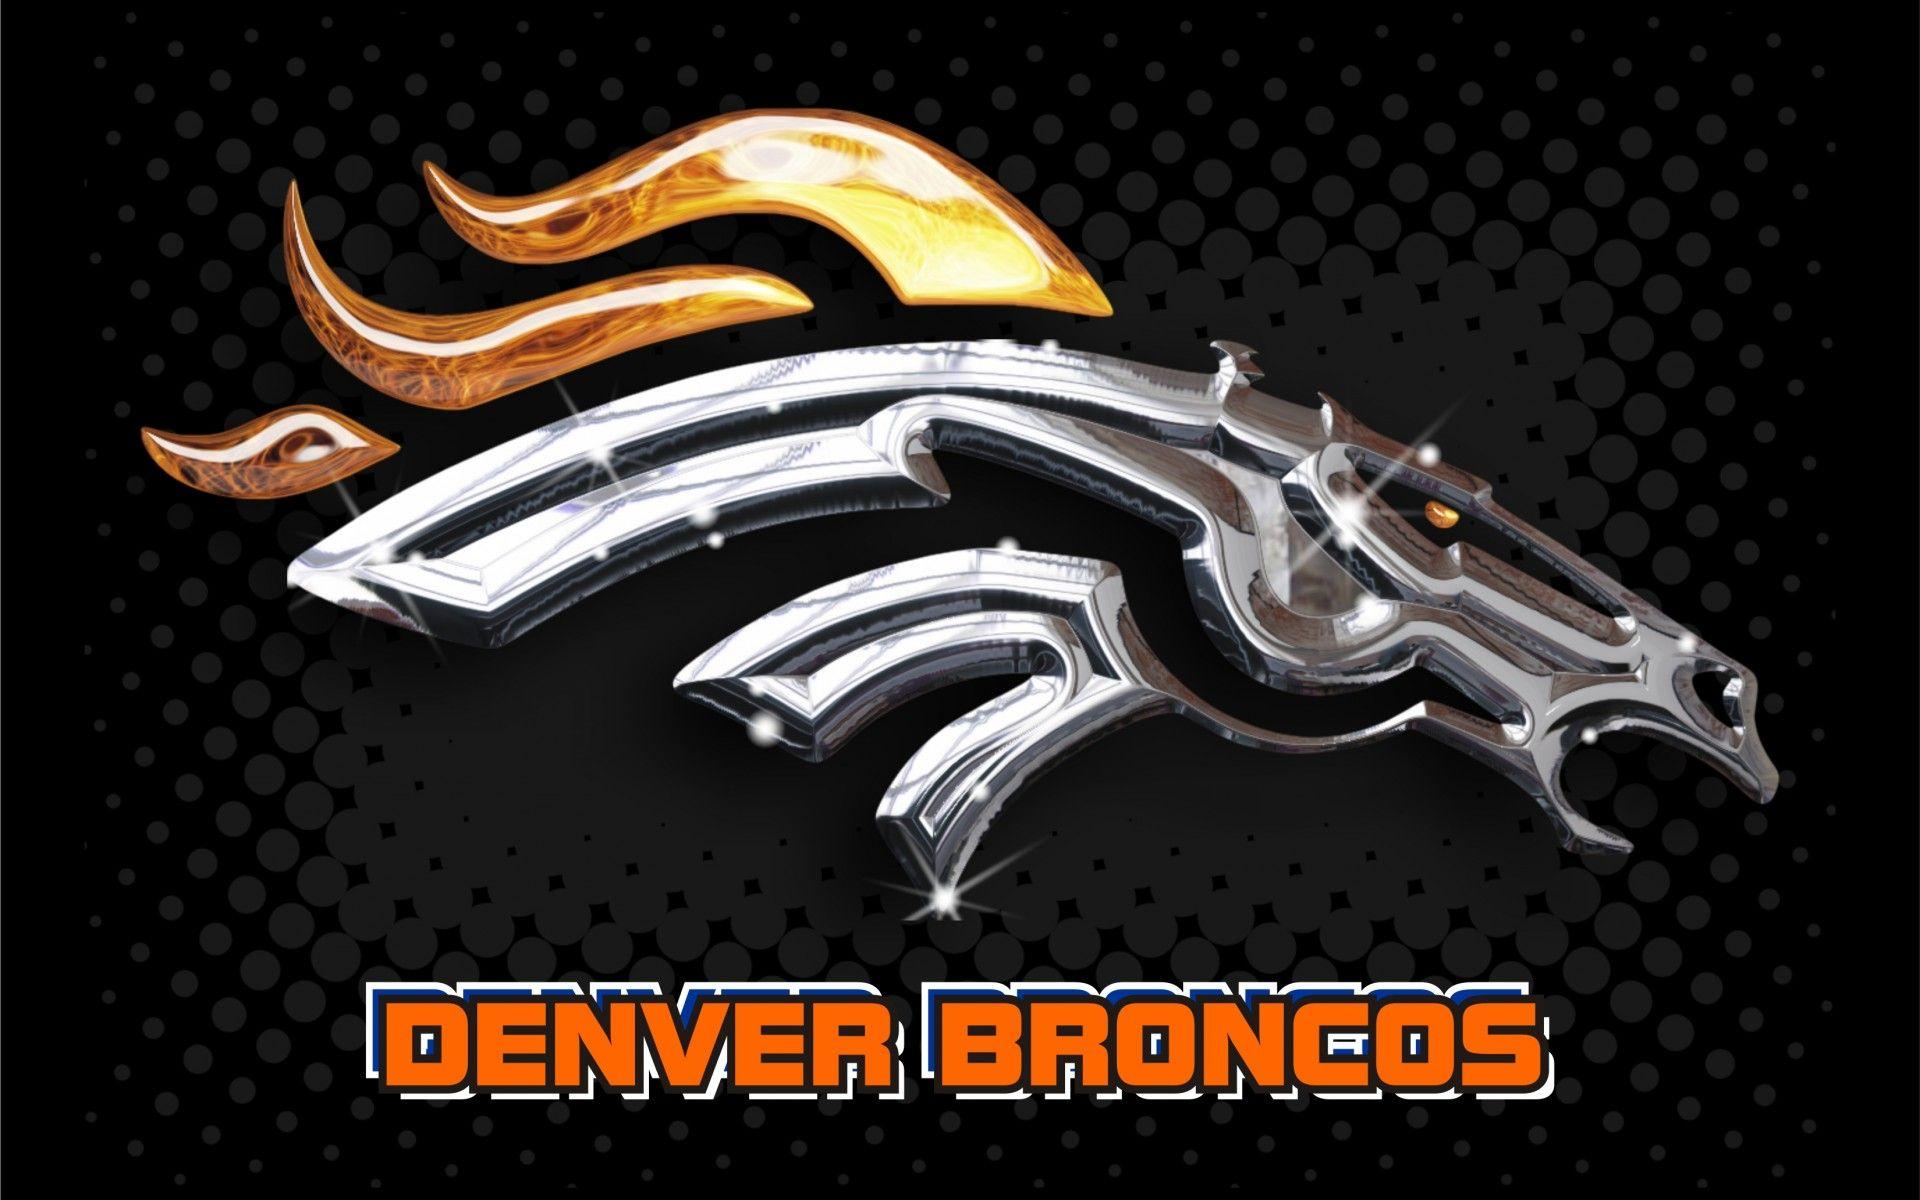 Denver Broncos 2014 NFL Logo Wallpapers Wide or HD